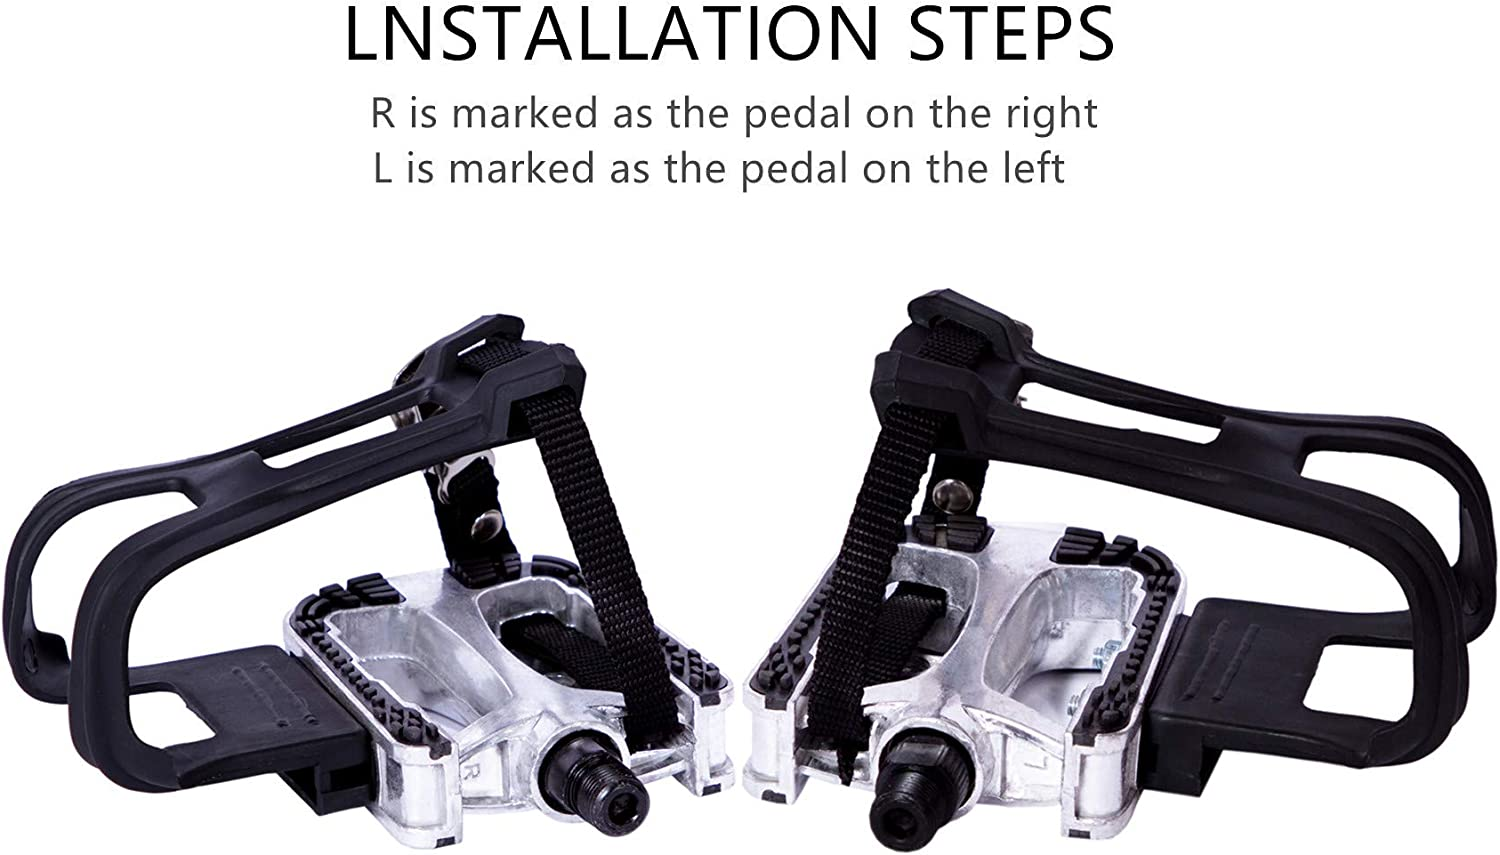 Spin Bike And outdoor bicycles 9//16-Inch Spindle Resin//Alloy Bicycle Pedals for Exercise Bike COZYROOMY Bike Pedals with Clips and Straps Half year warranty